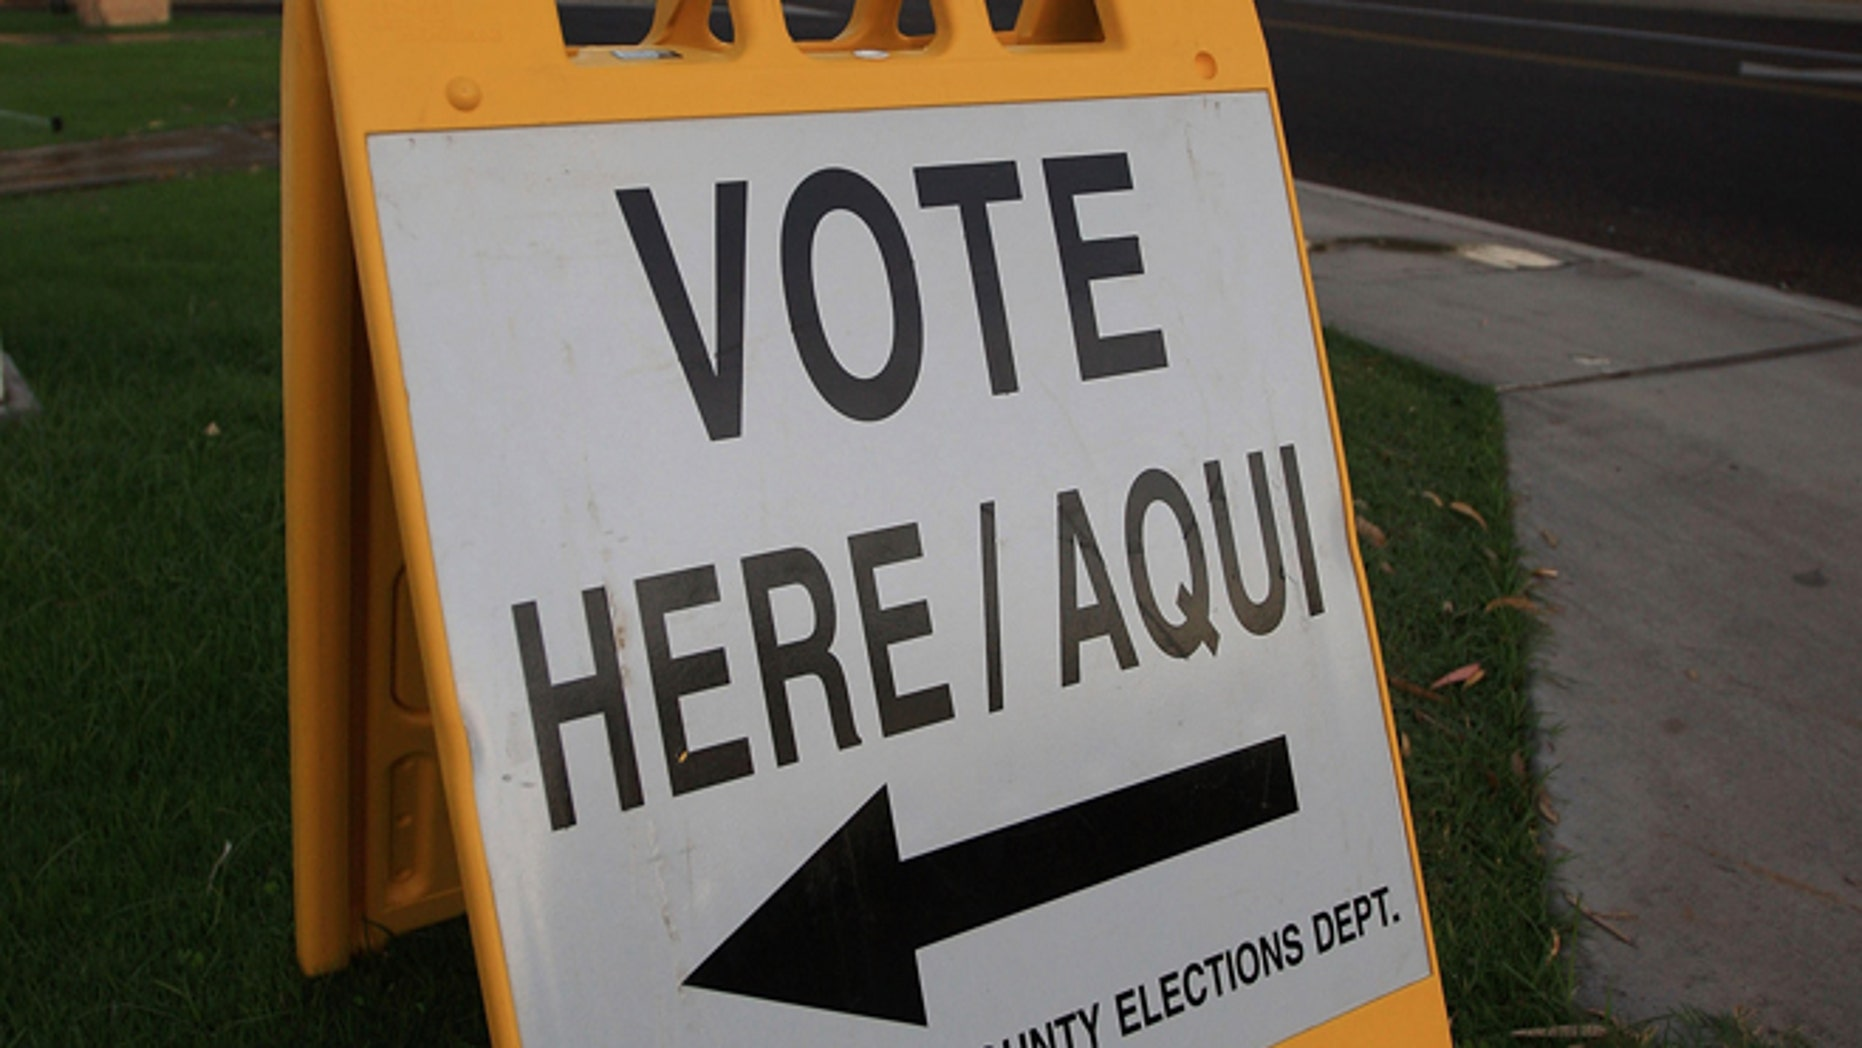 PHOENIX - NOVEMBER 4:  A bilingual sign announces a polling place in the home state of Republican presidential nominee U.S. Sen. John McCain (R-AZ) November 4, 2008 in Phoenix, Arizona. Voting is underway in the U.S. presidential elections with Democratic presidential nominee Sen. Barack Obama (D-IL) leading in the polls against the Republican presidential nominee Sen. John McCain (R-AZ).  (Photo by David McNew/Getty Images)